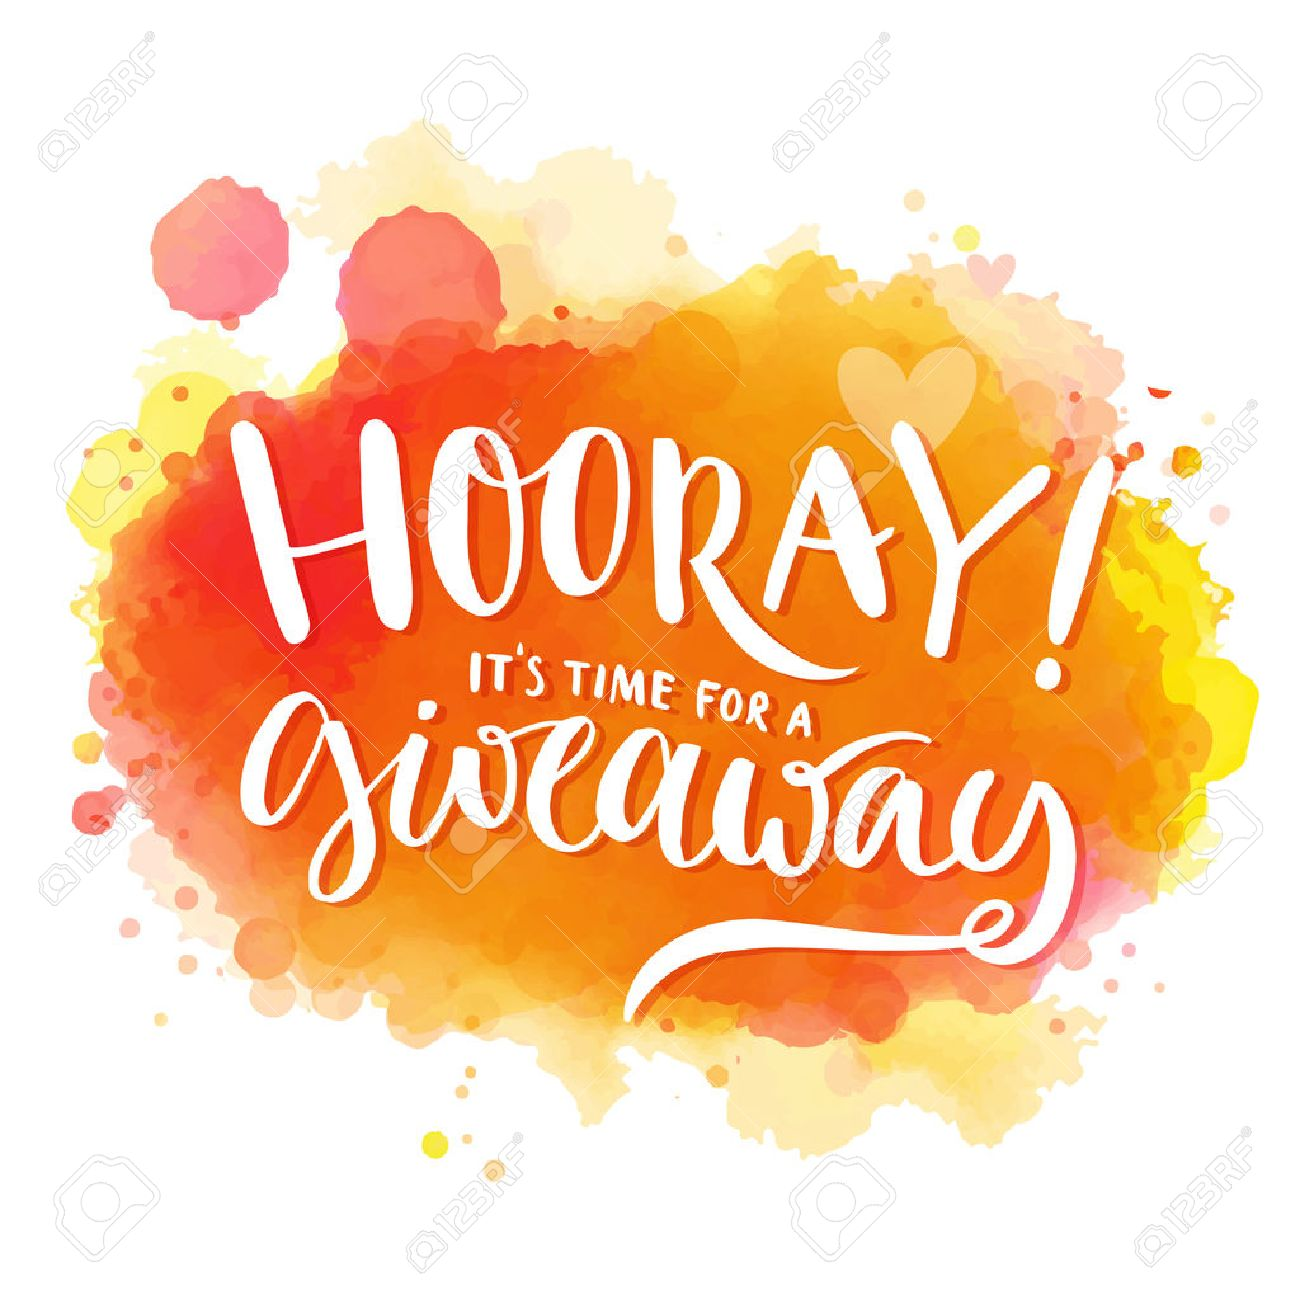 Hooray, It's Time For A Giveaway. Banner For Social Media Contests ...